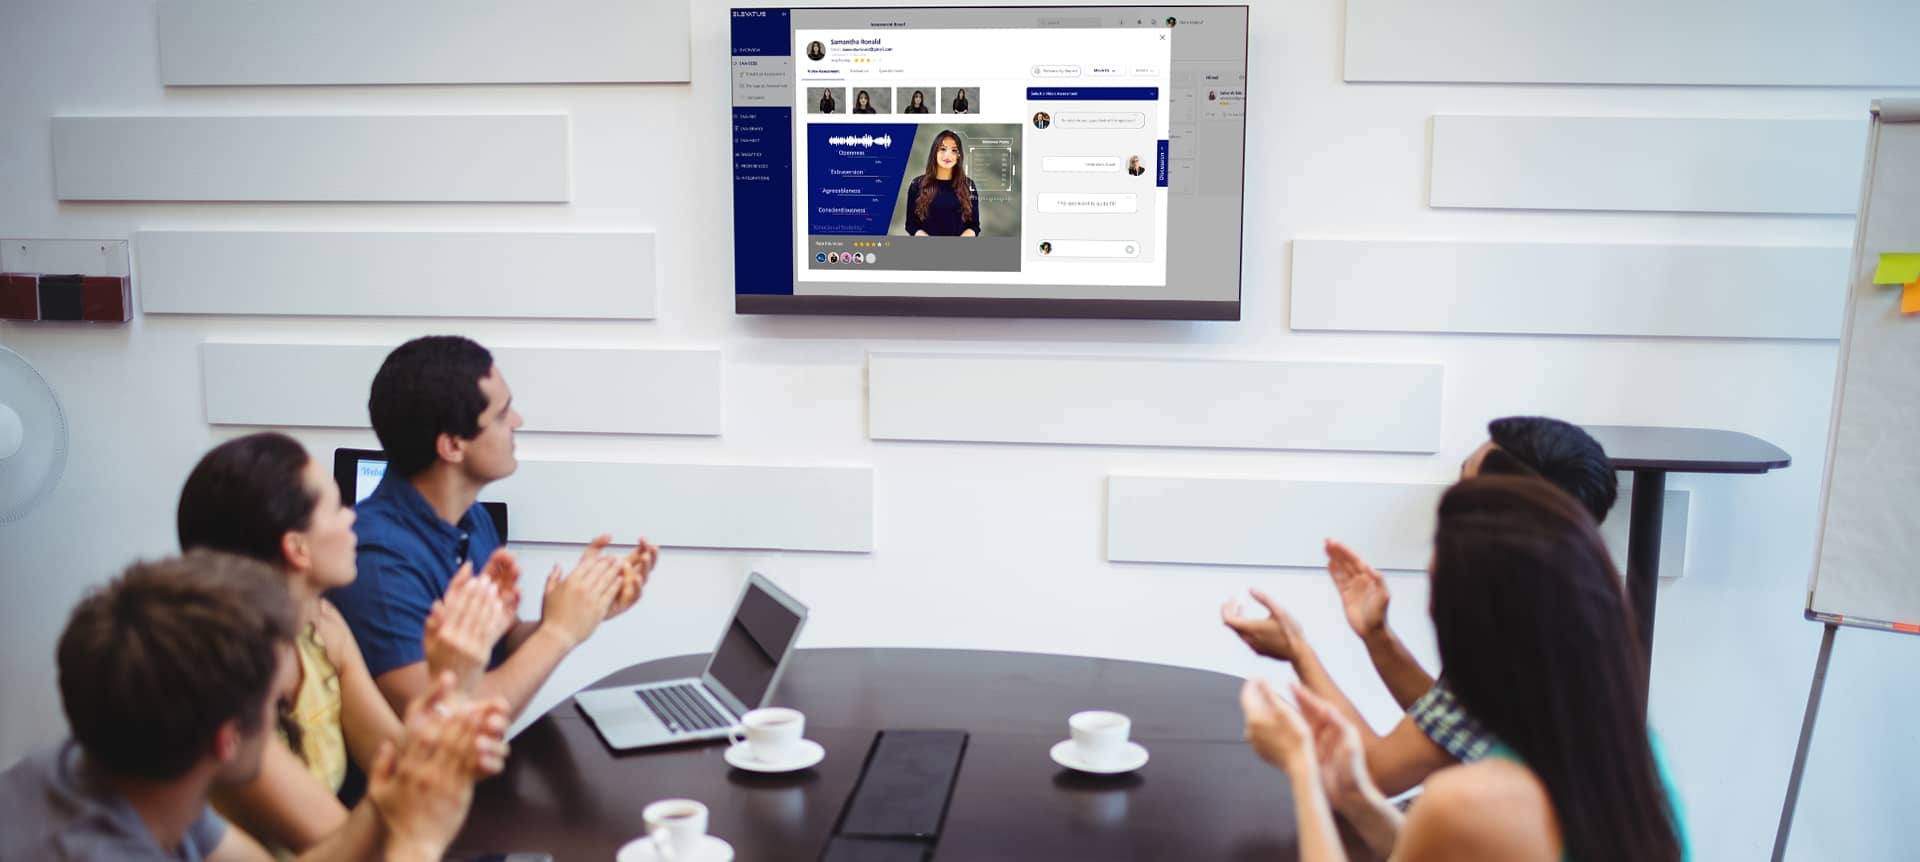 A group of employees using a video interviewing software